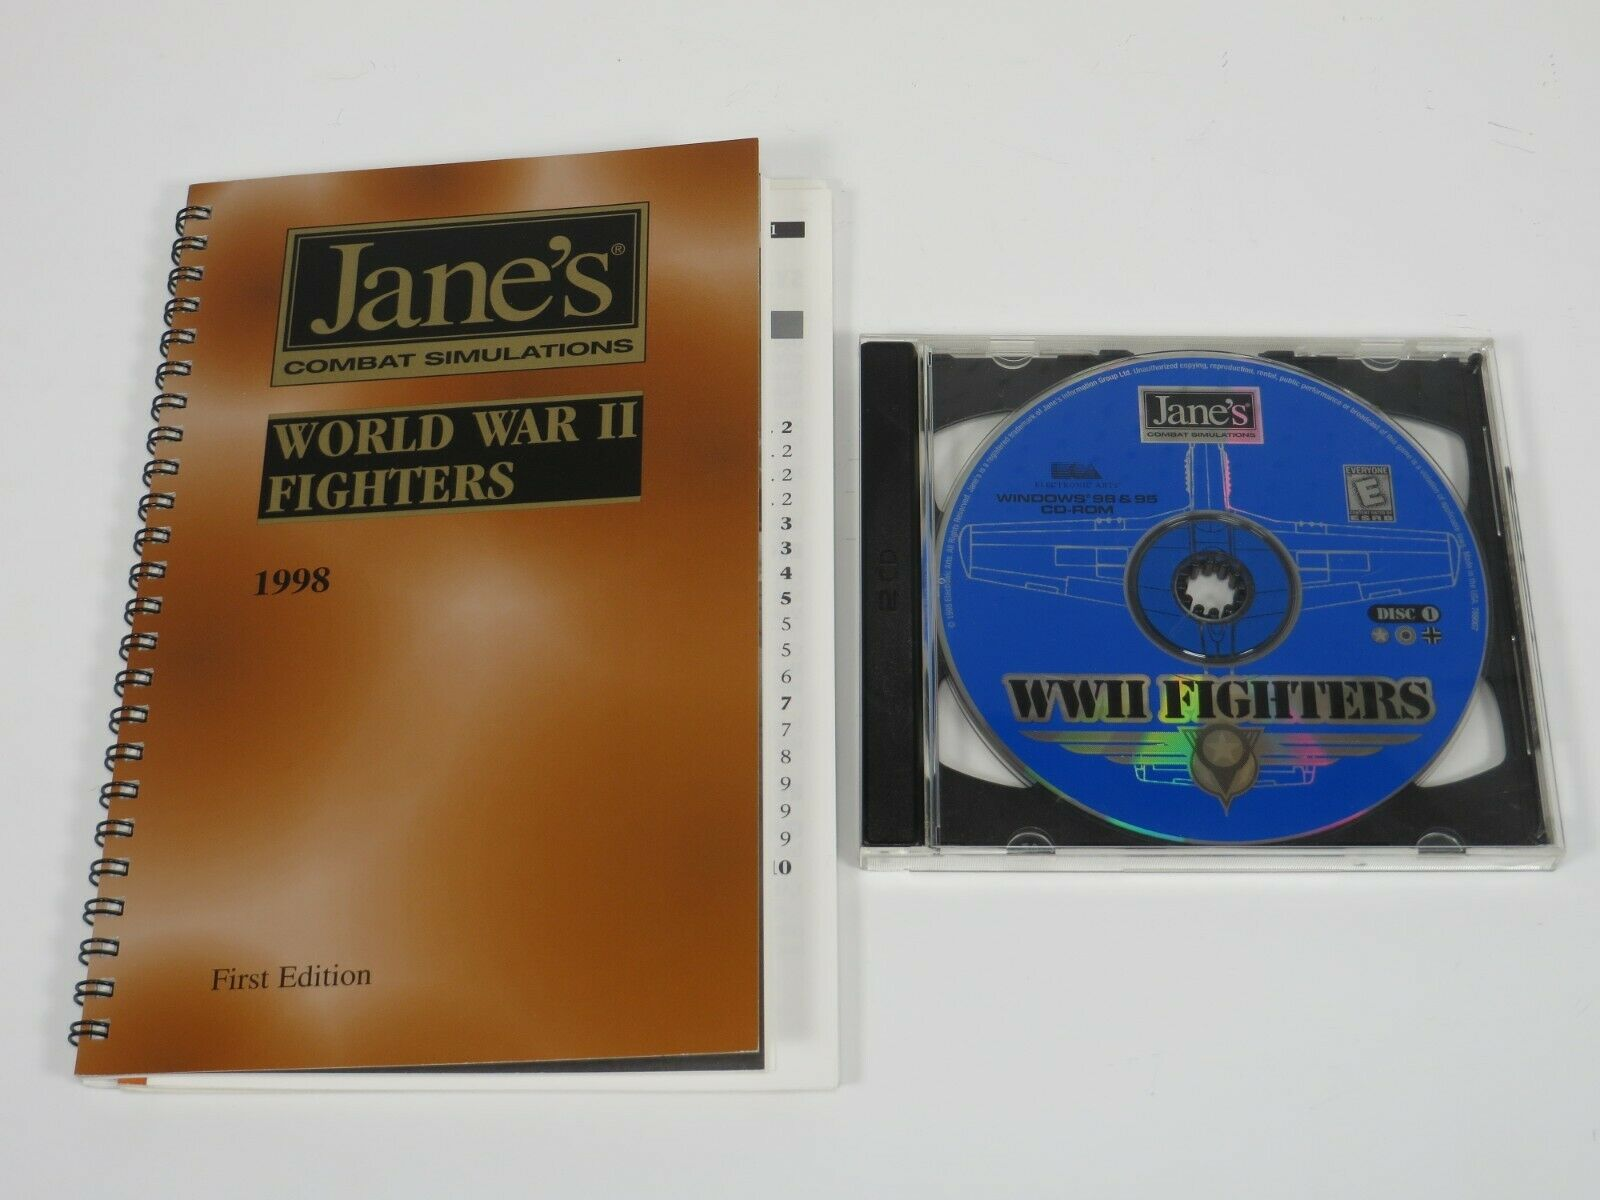 Computer Games - Jane's WWII Fighters (PC, 1998) PC Vintage Computer Game Electronic Arts